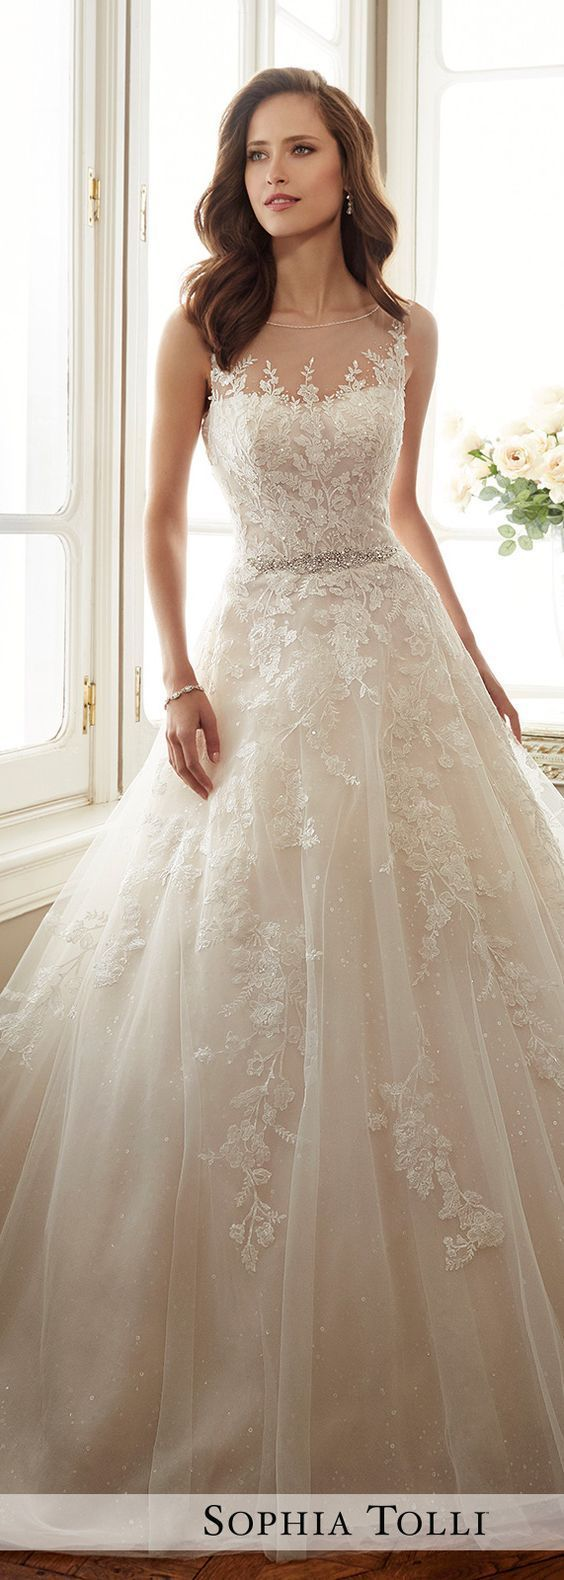 Best 25+ Beautiful wedding dress ideas on Pinterest ...